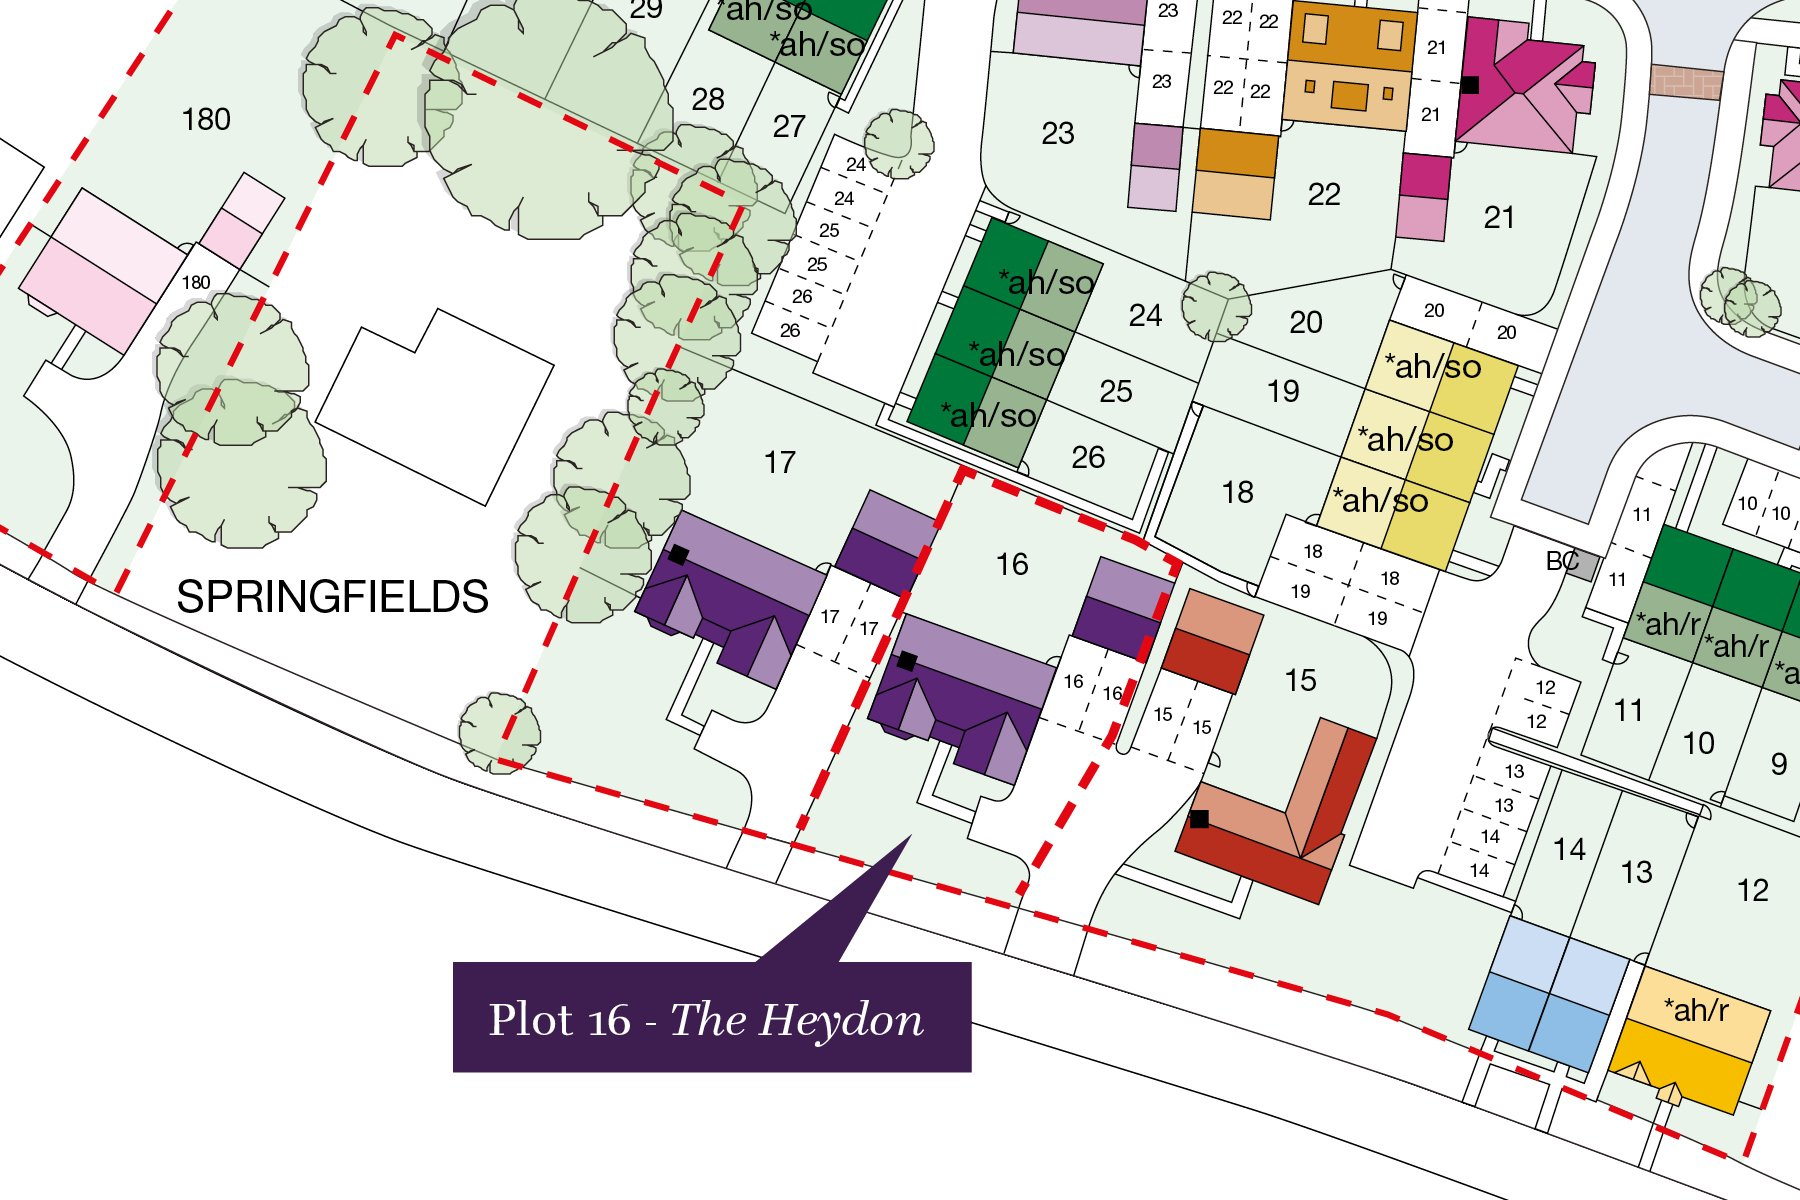 Wheatfield Manor - Plot 6 Site Plan Graphic